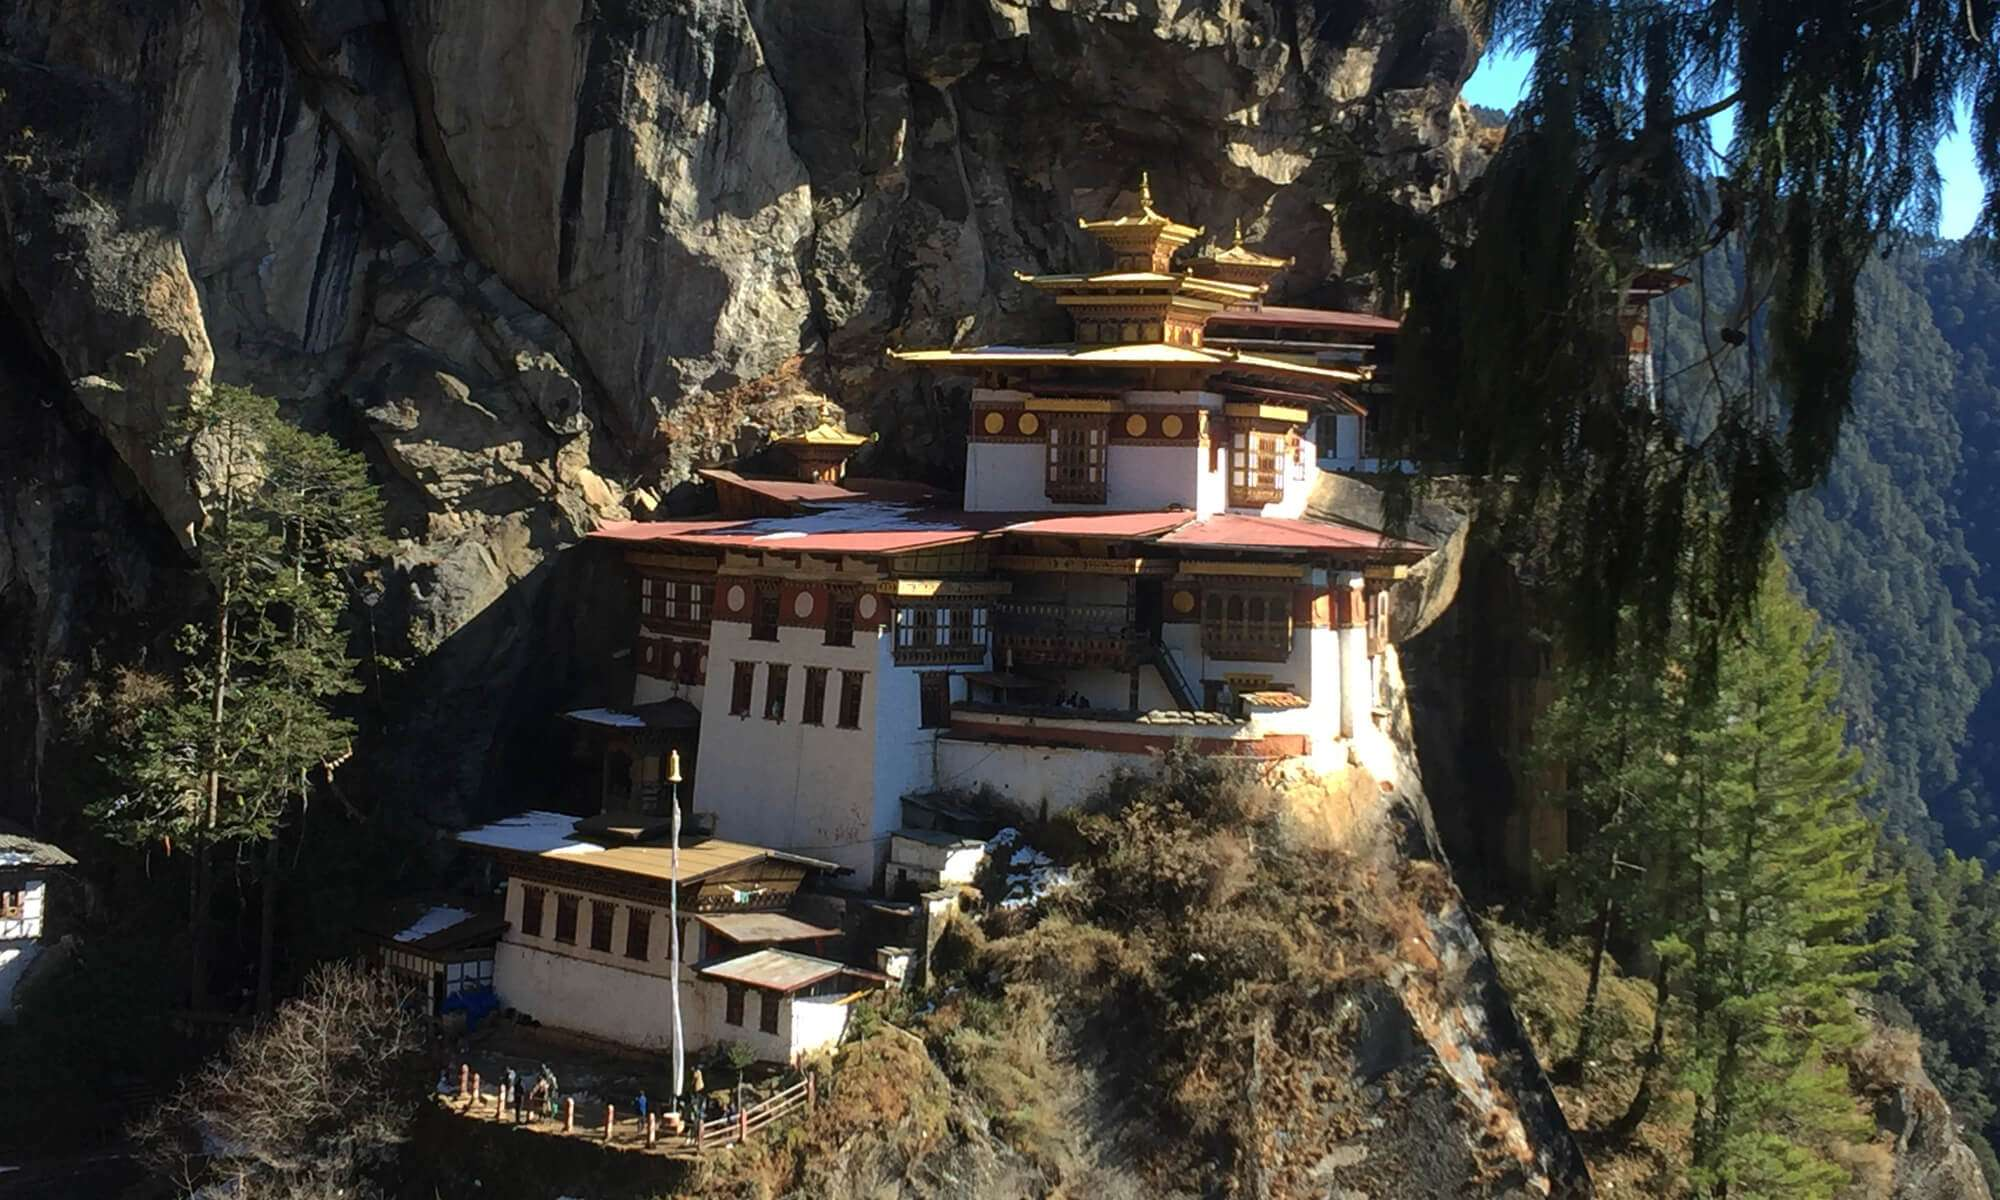 Tigernest Monastery in Paro